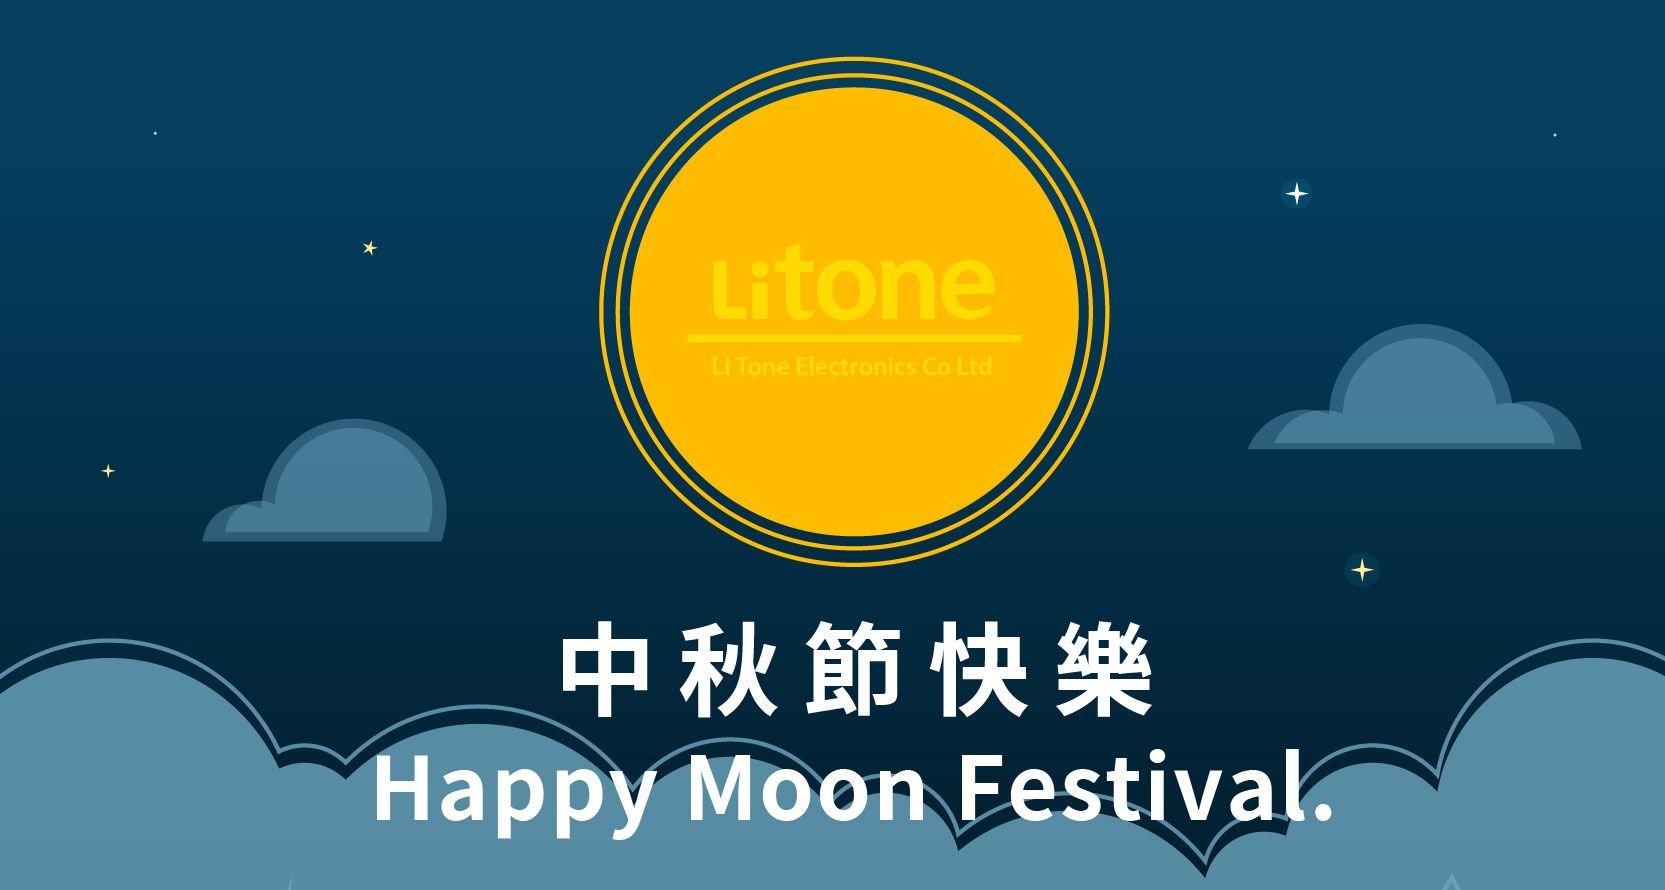 2020 Happy Moon Festival.